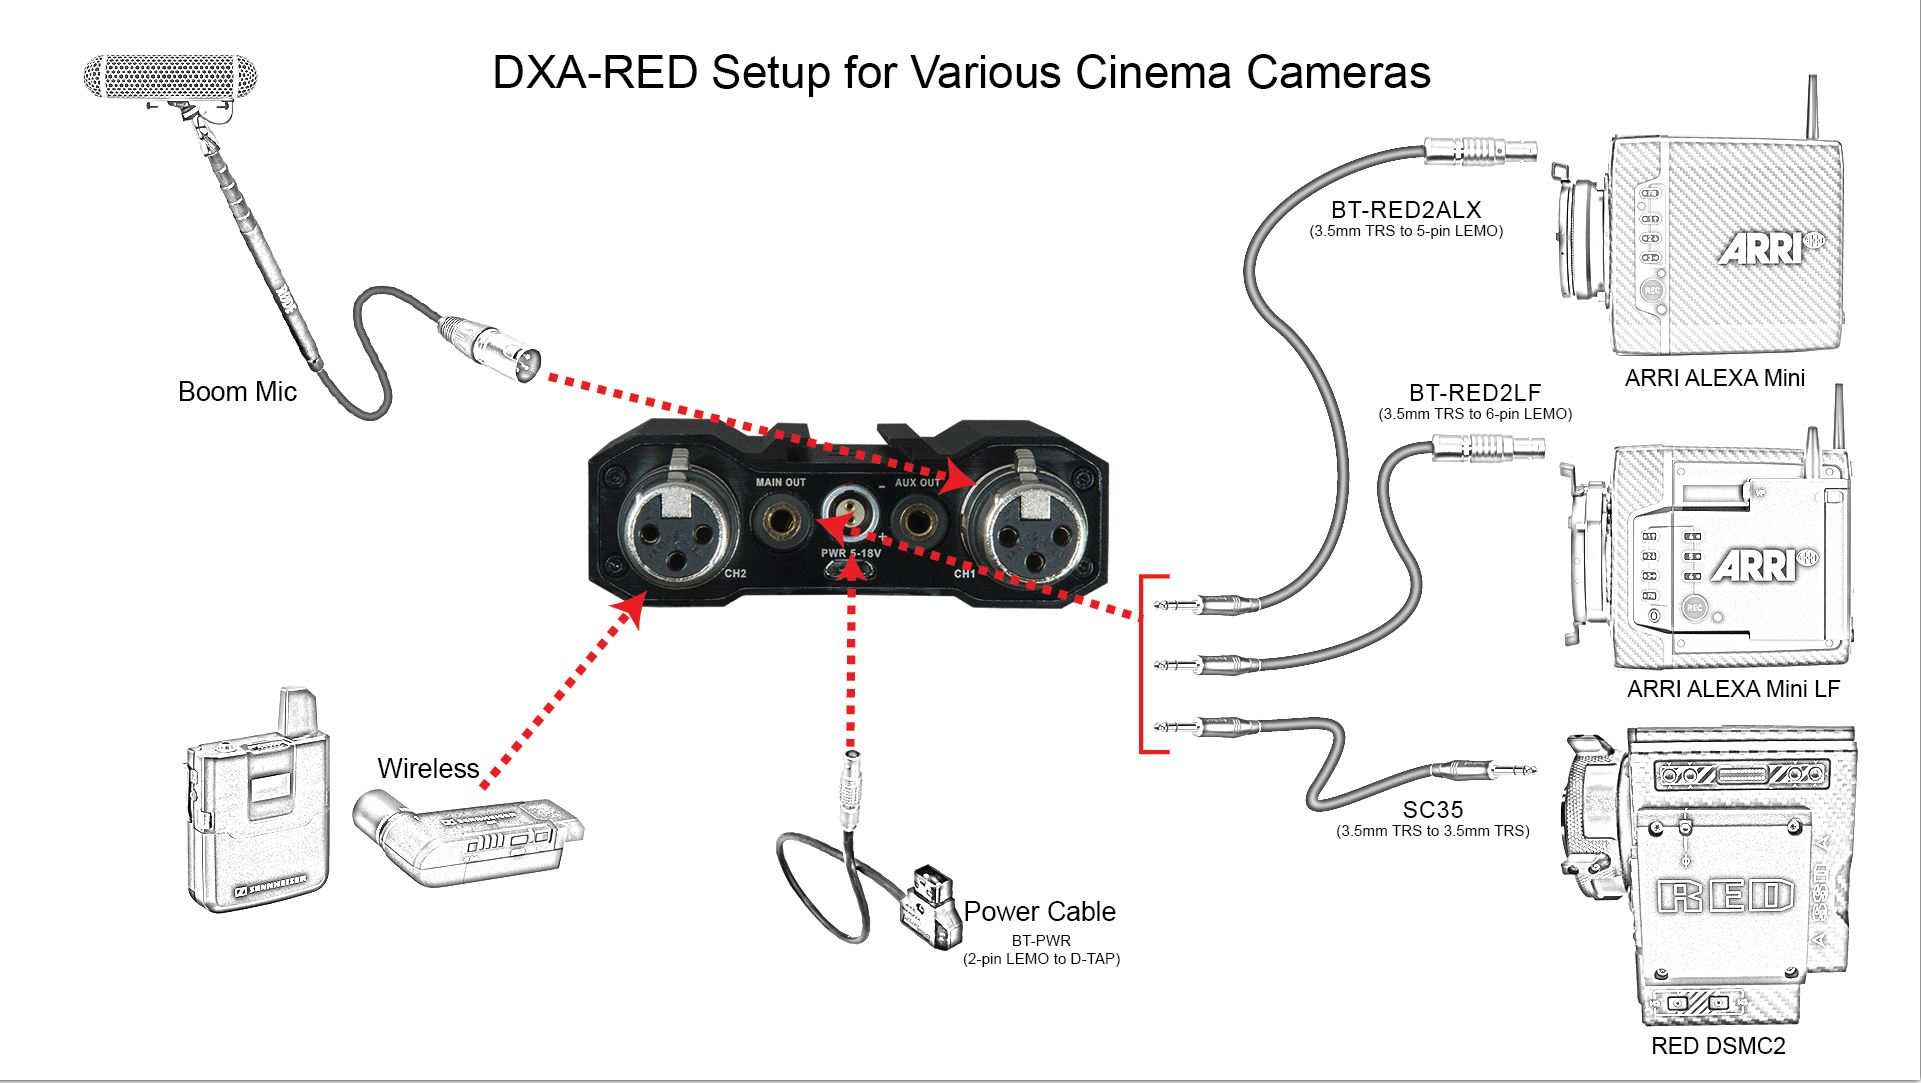 02 Dxa Red Schematic